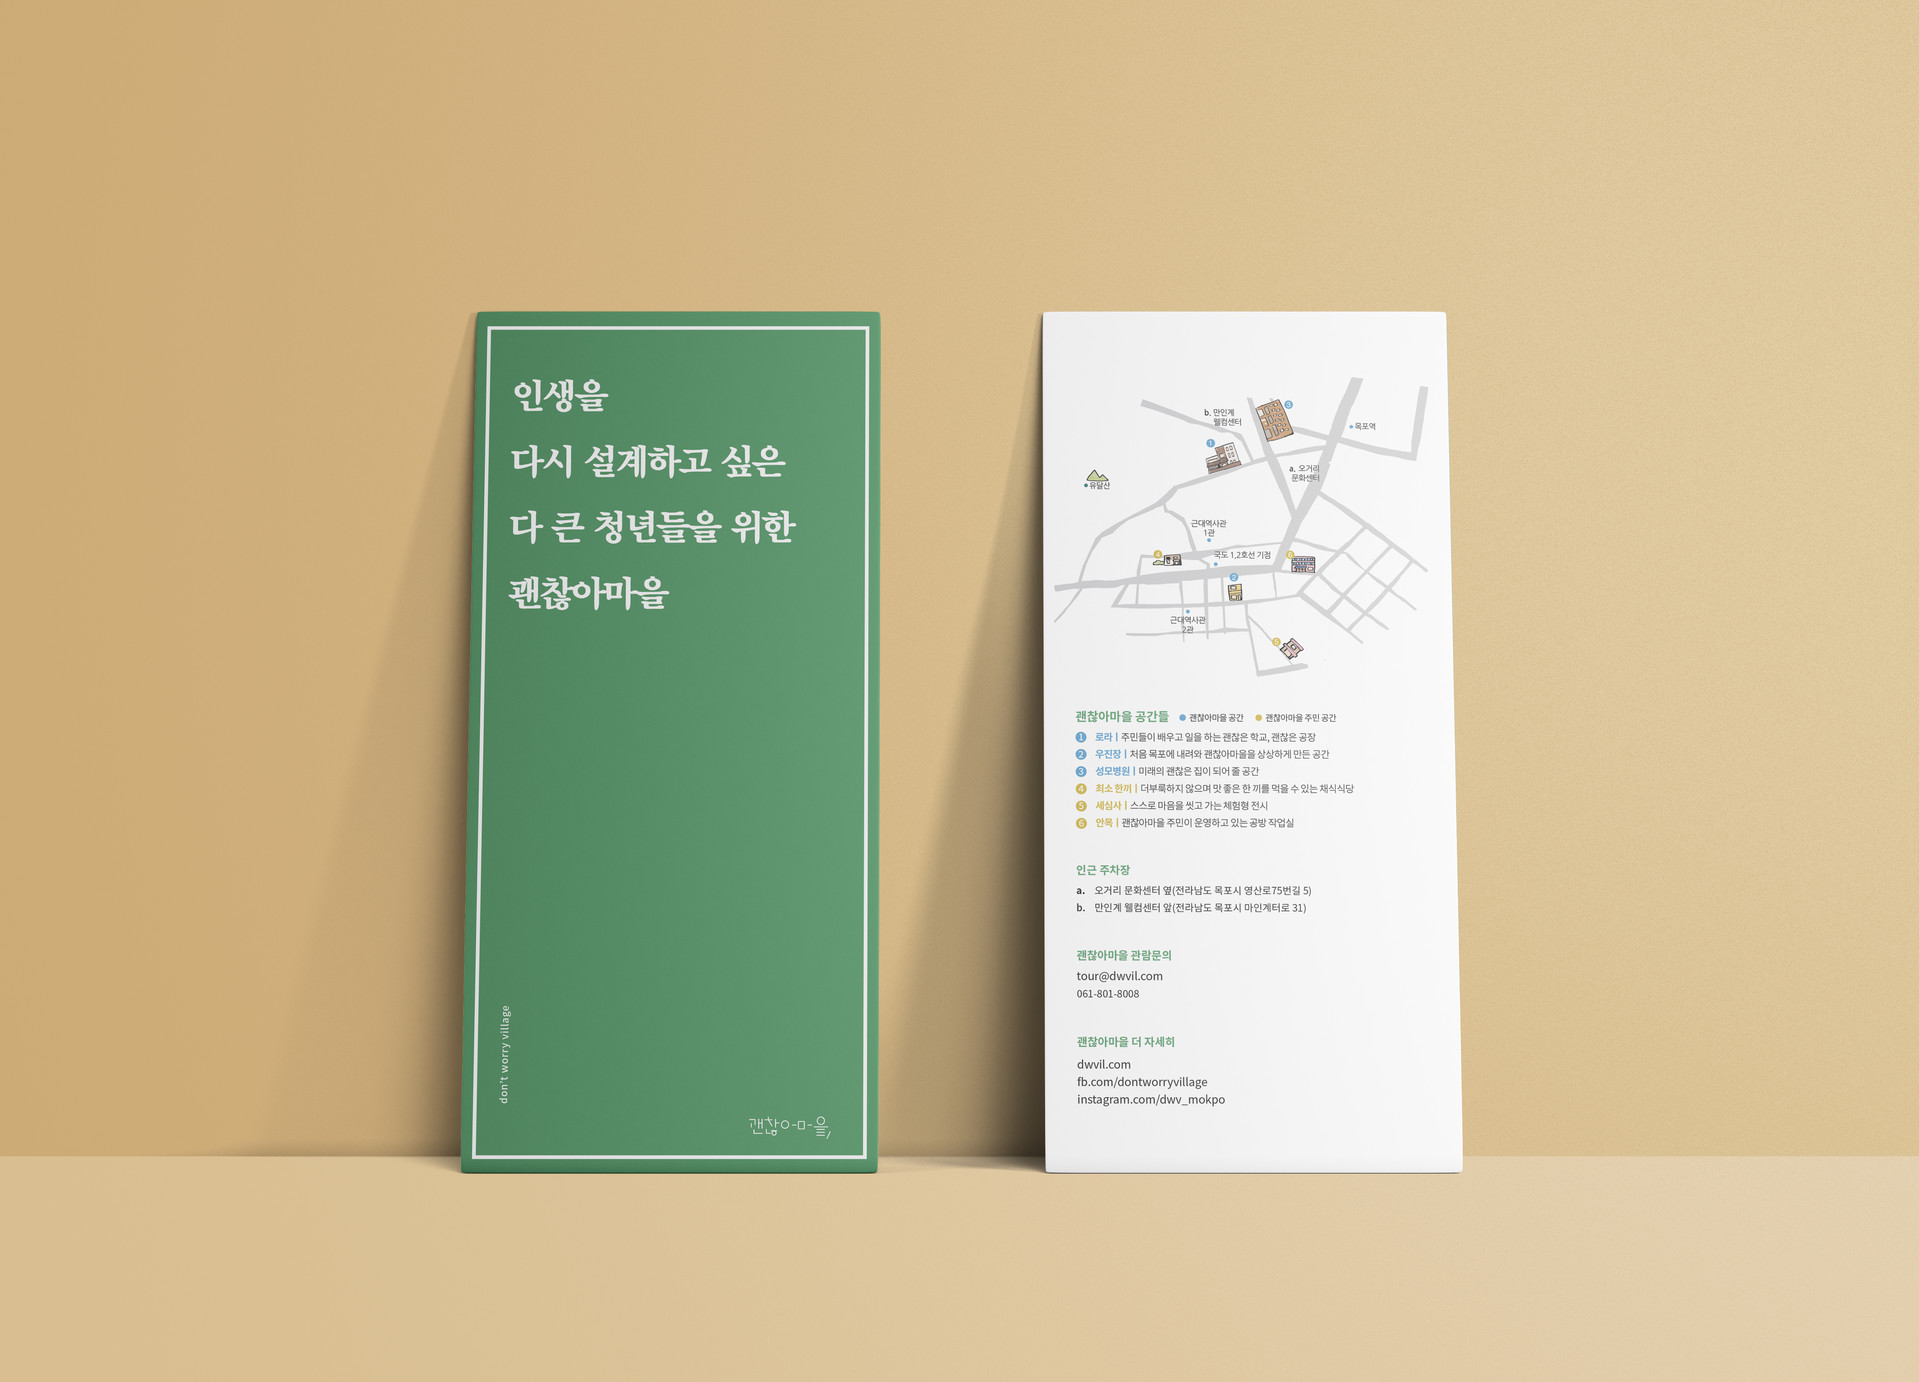 "<span style=""font-family: Arial,Helvetica,sans-serif;"">괜찮아마을 설명서</span><br><span style=""font-size: 10px;""><span style=""font-family: Arial,Helvetica,sans-serif;"">Editorial Design</span><br><span style=""font-family: Arial,Helvetica,sans-serif;"">2019</span>"